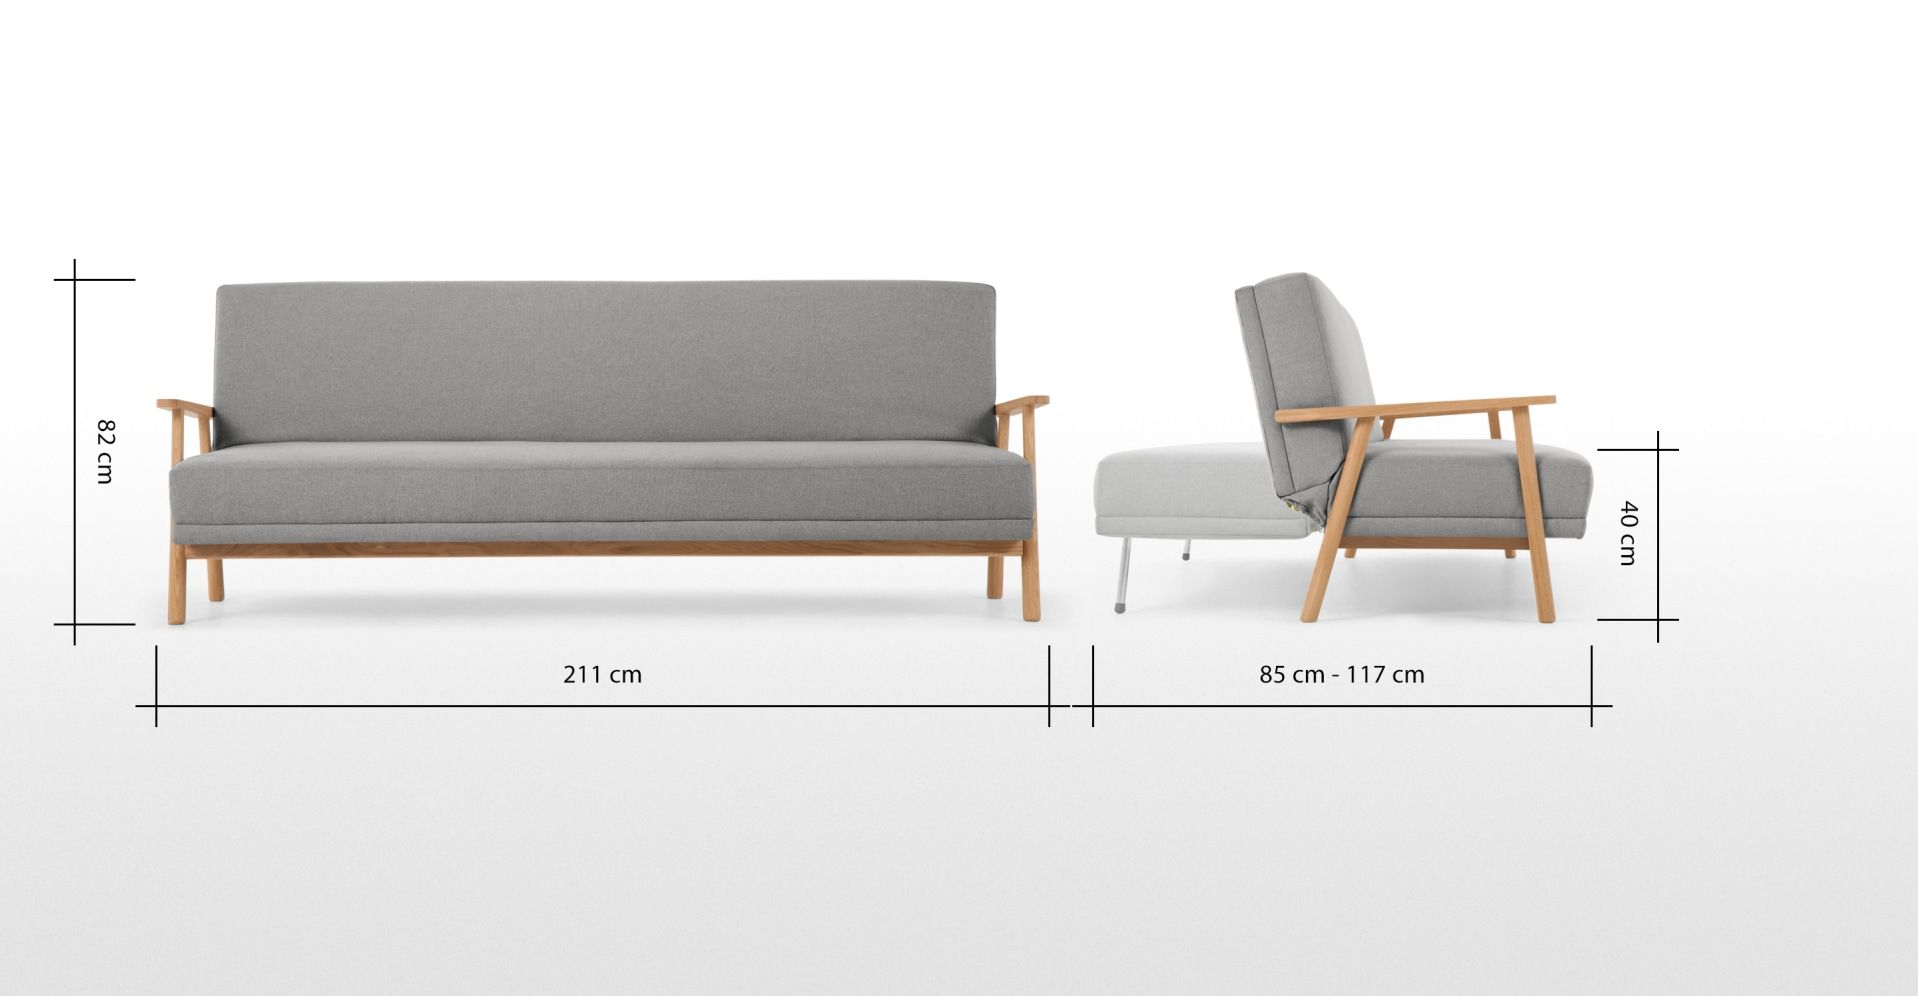 Lars Click Clack Sofa Bed Mountain Grey And Oak Frame In 2020